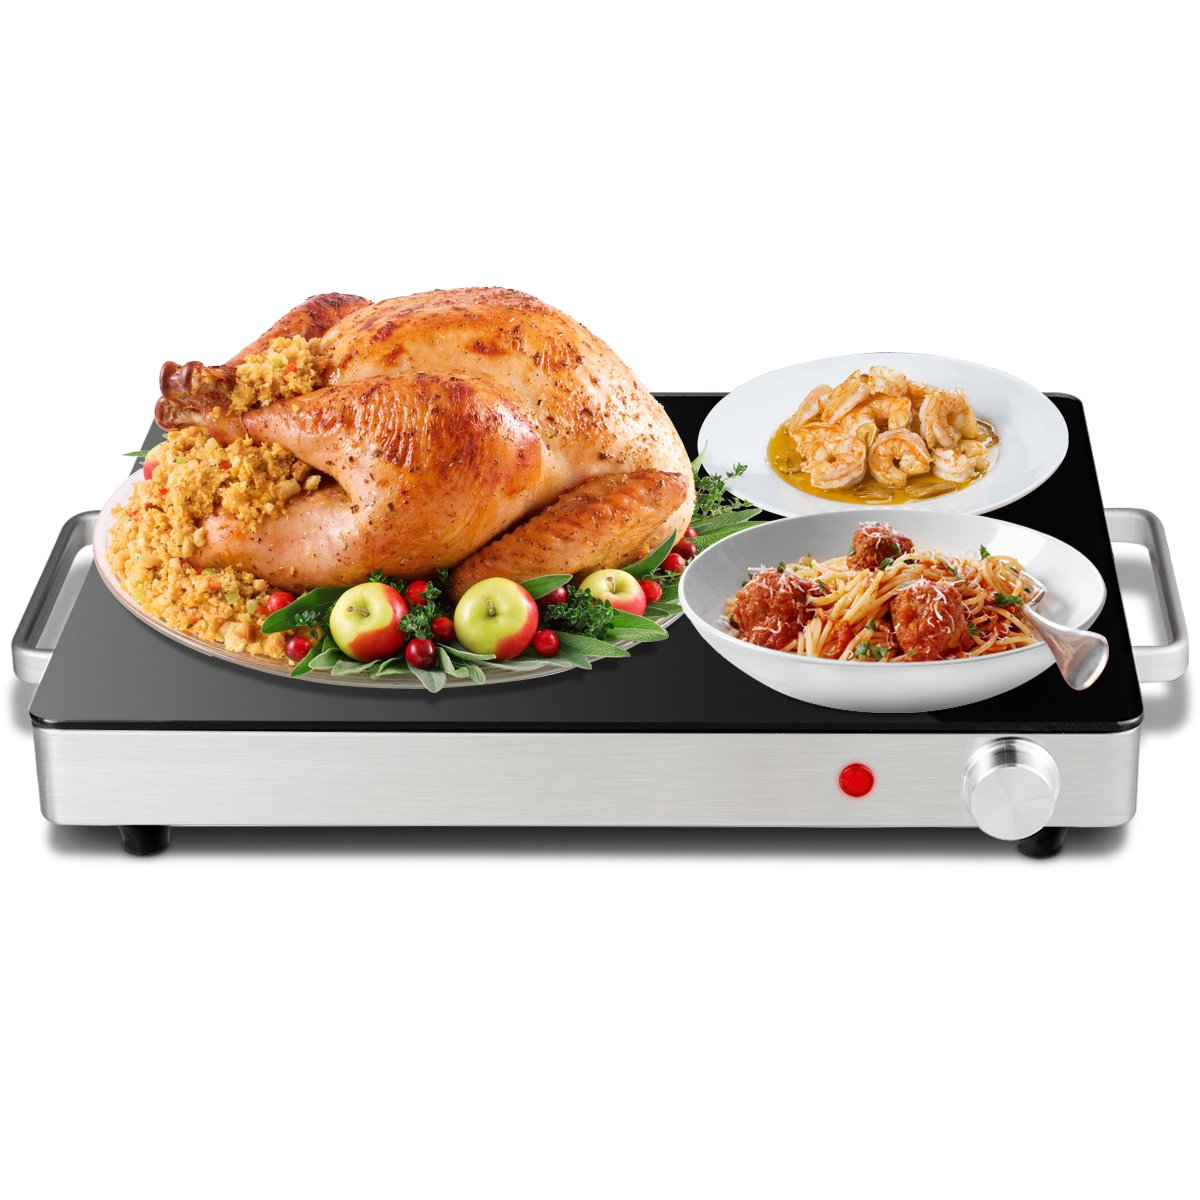 Giantex Warming Tray with Overheat Protection Safe Cool Side Handles, Toughened Glass Top & Four Feet Perfect For Buffets, Restaurants and Home Dinners by Giantex